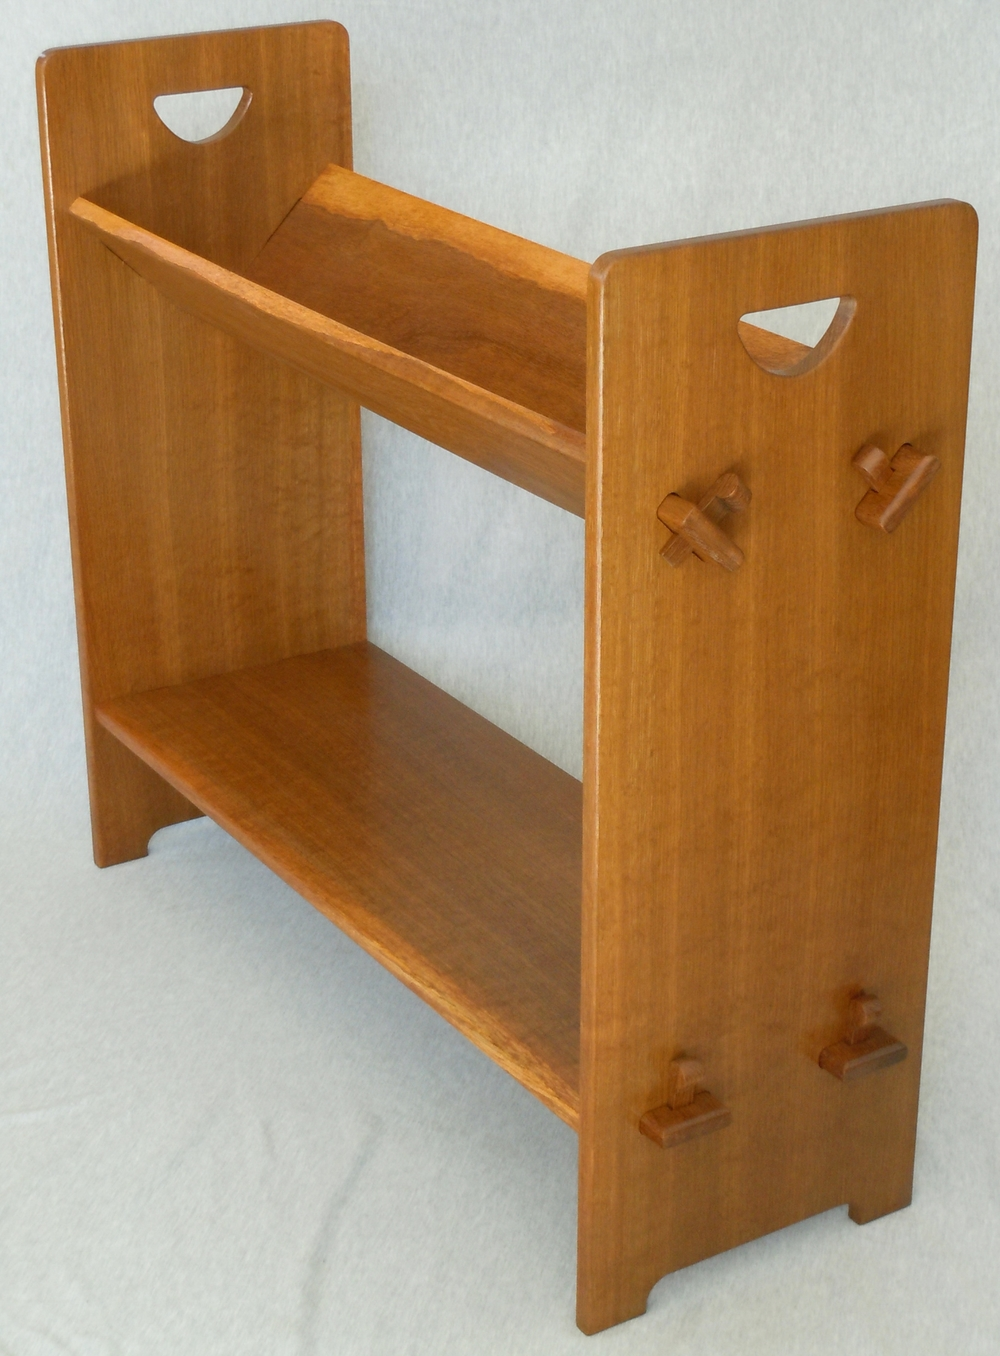 Arts and Crafts style pierced bookshelf